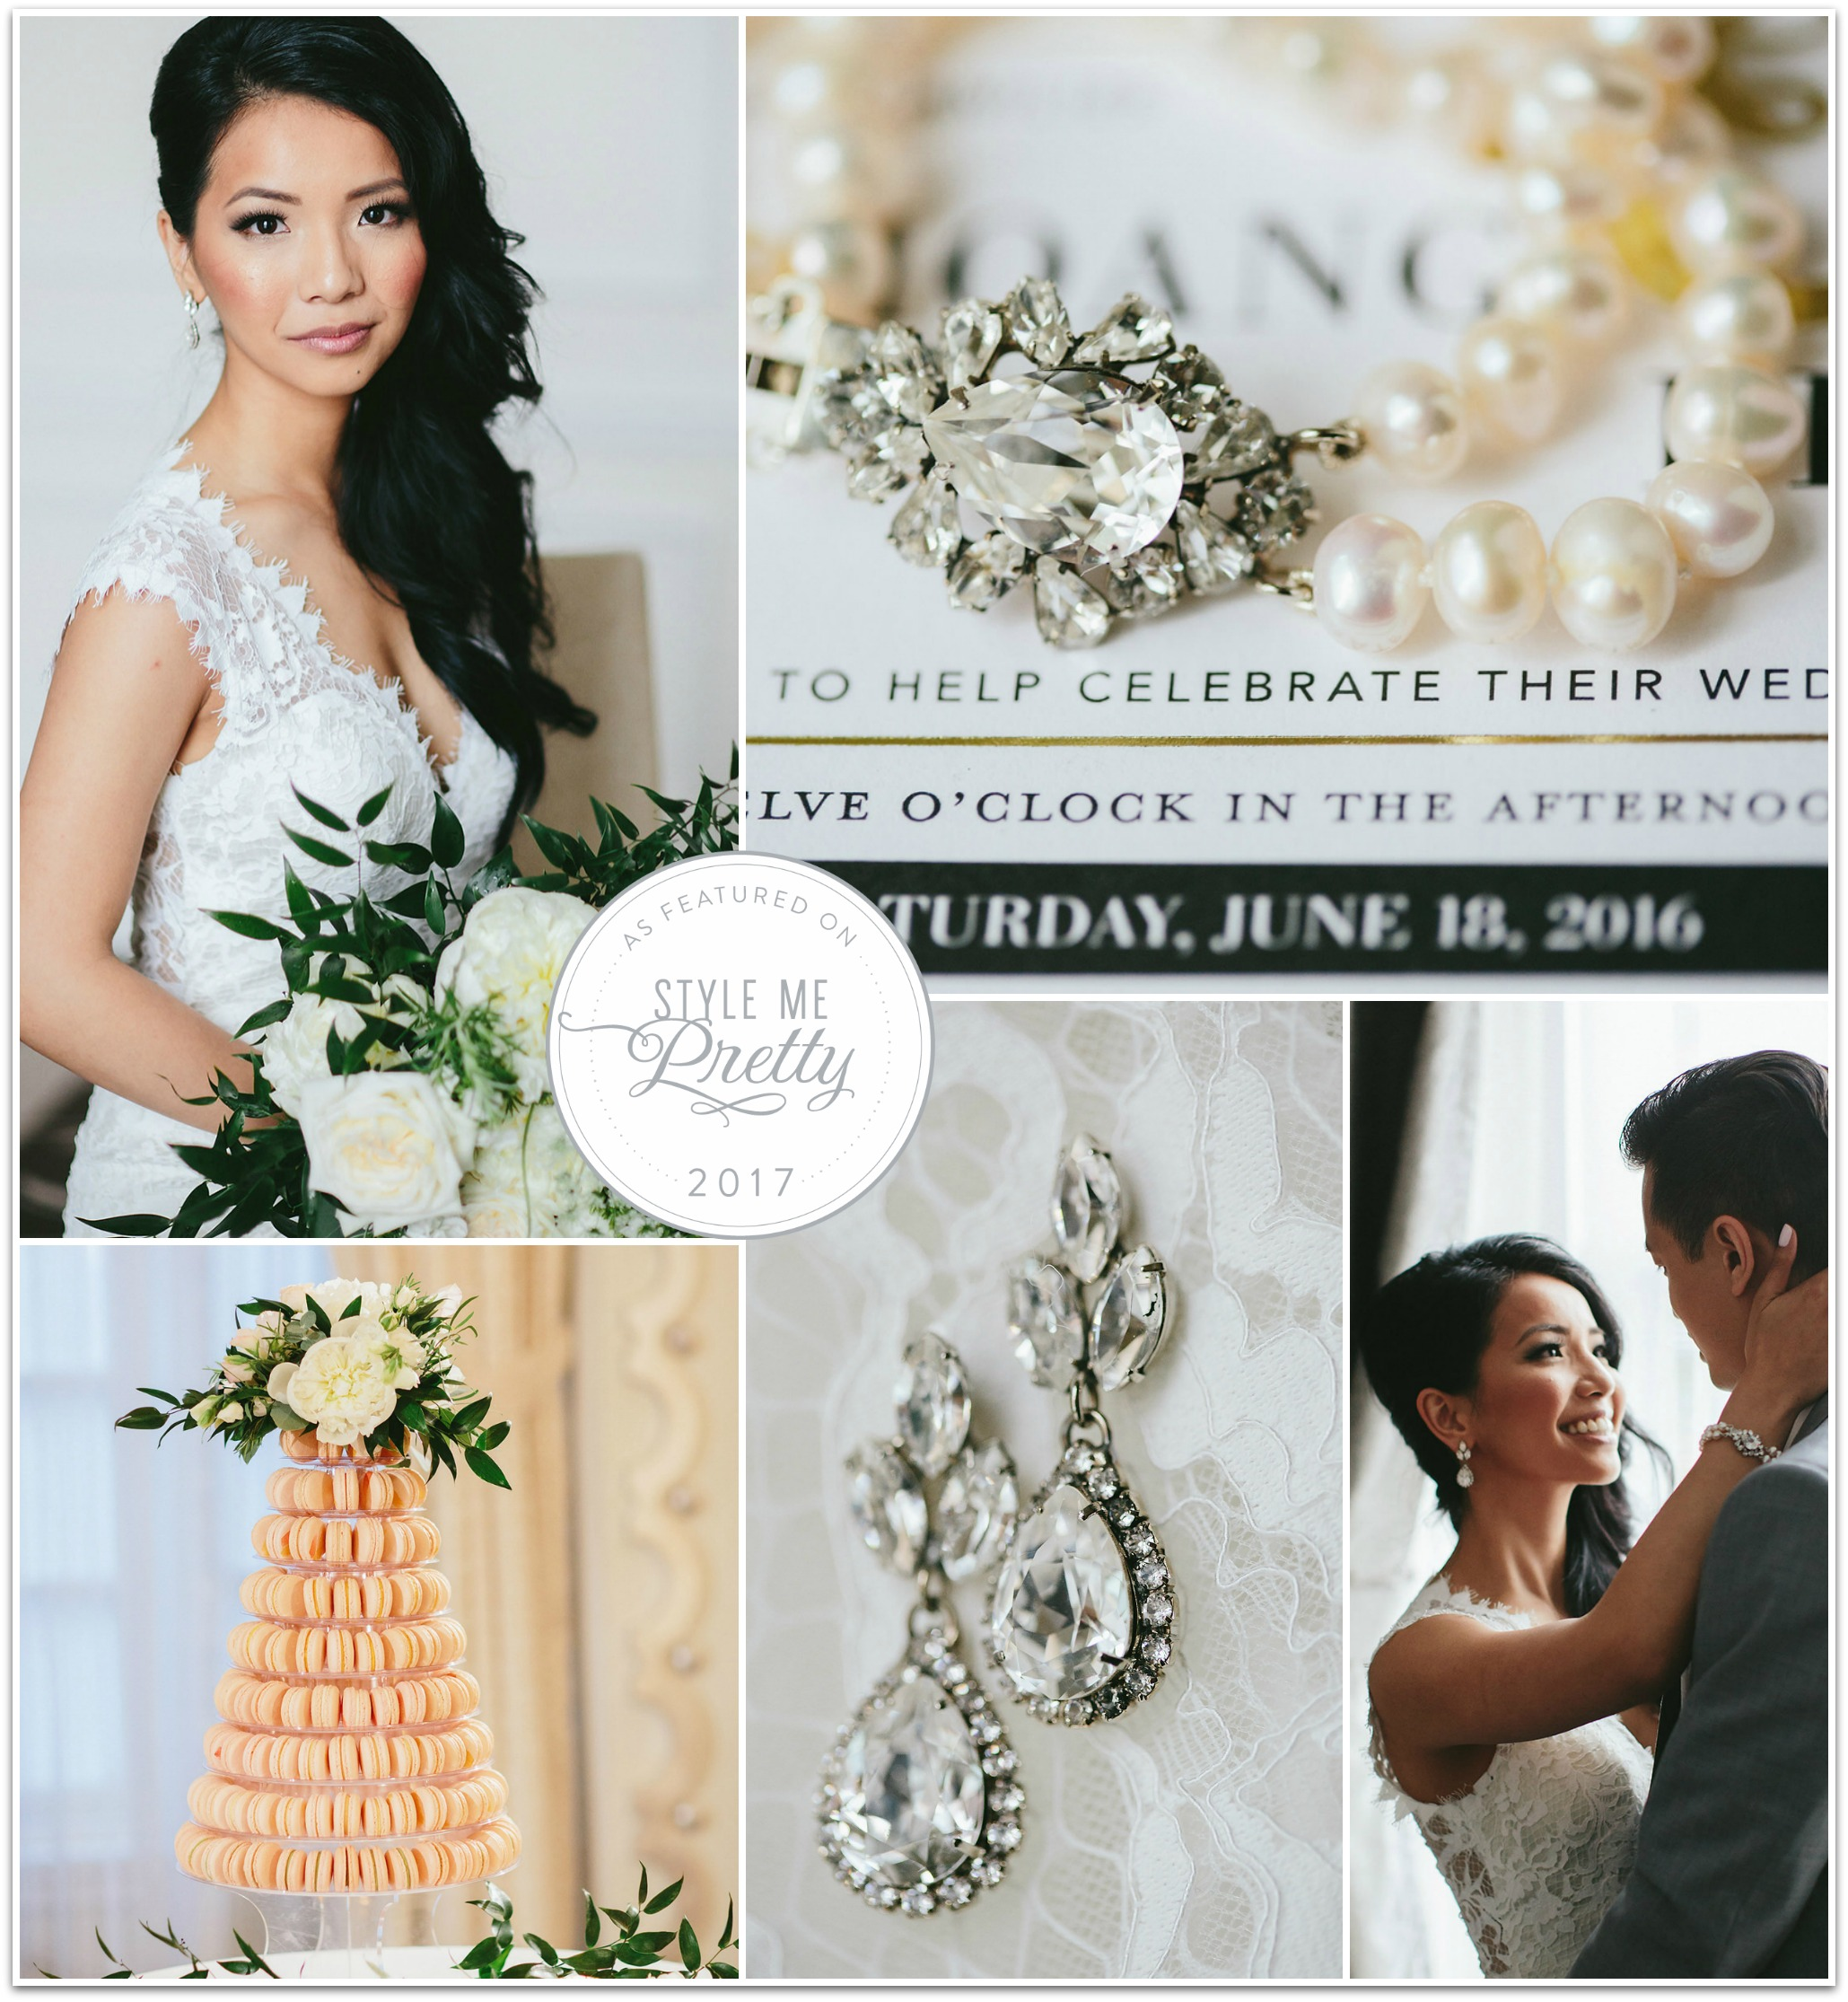 Style Me Pretty Wedding, Jewelry by Elsa Corsi